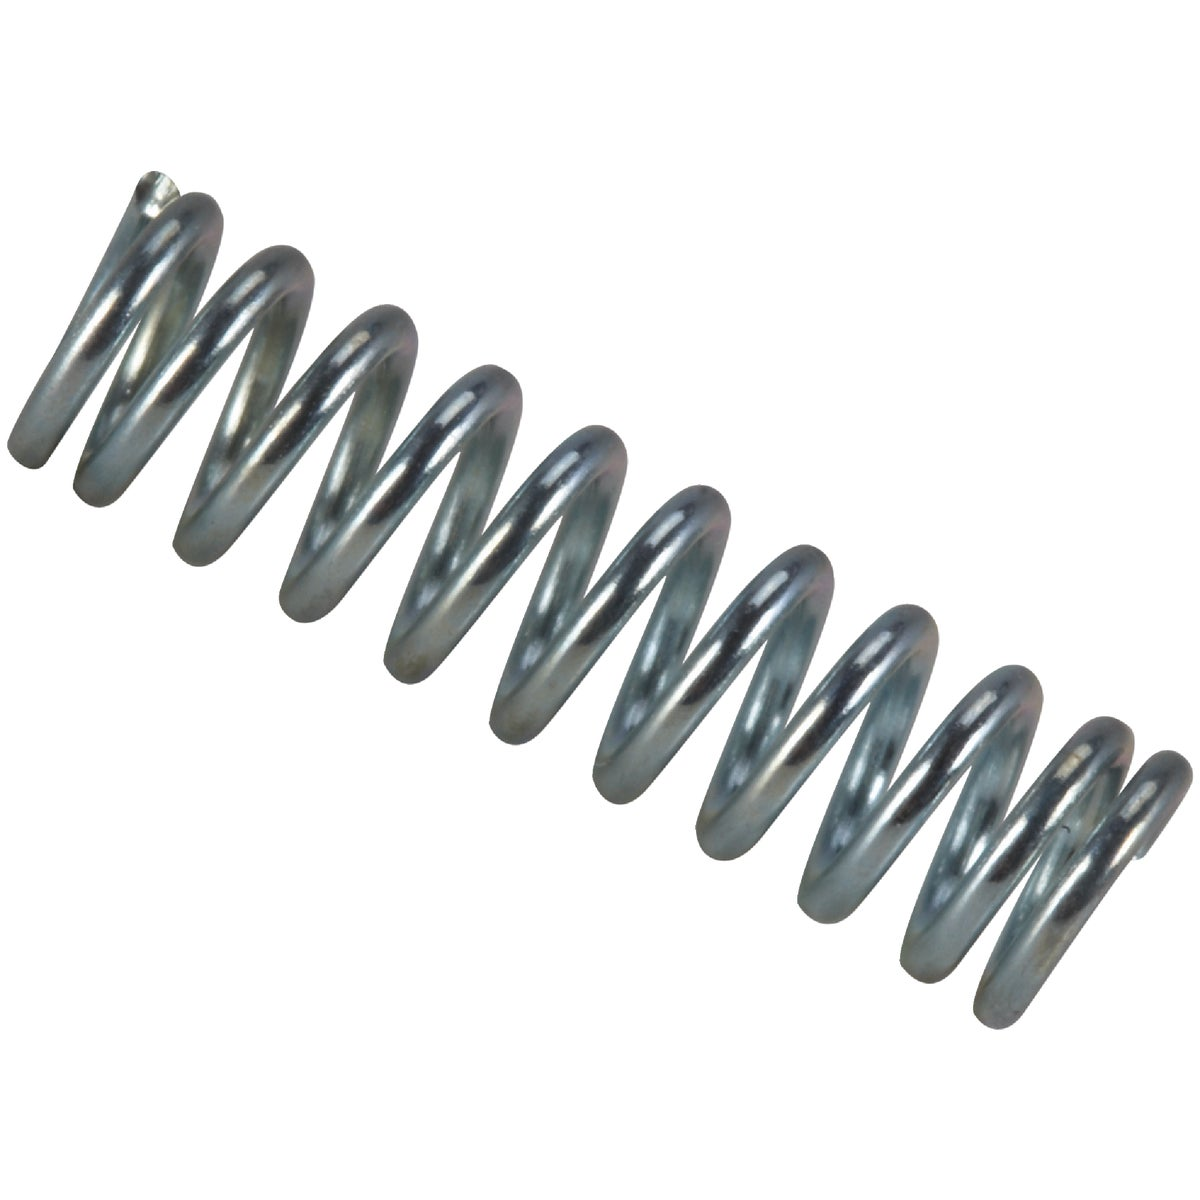 COMPRESSION SPRING - C-604 by Century Spring Corp